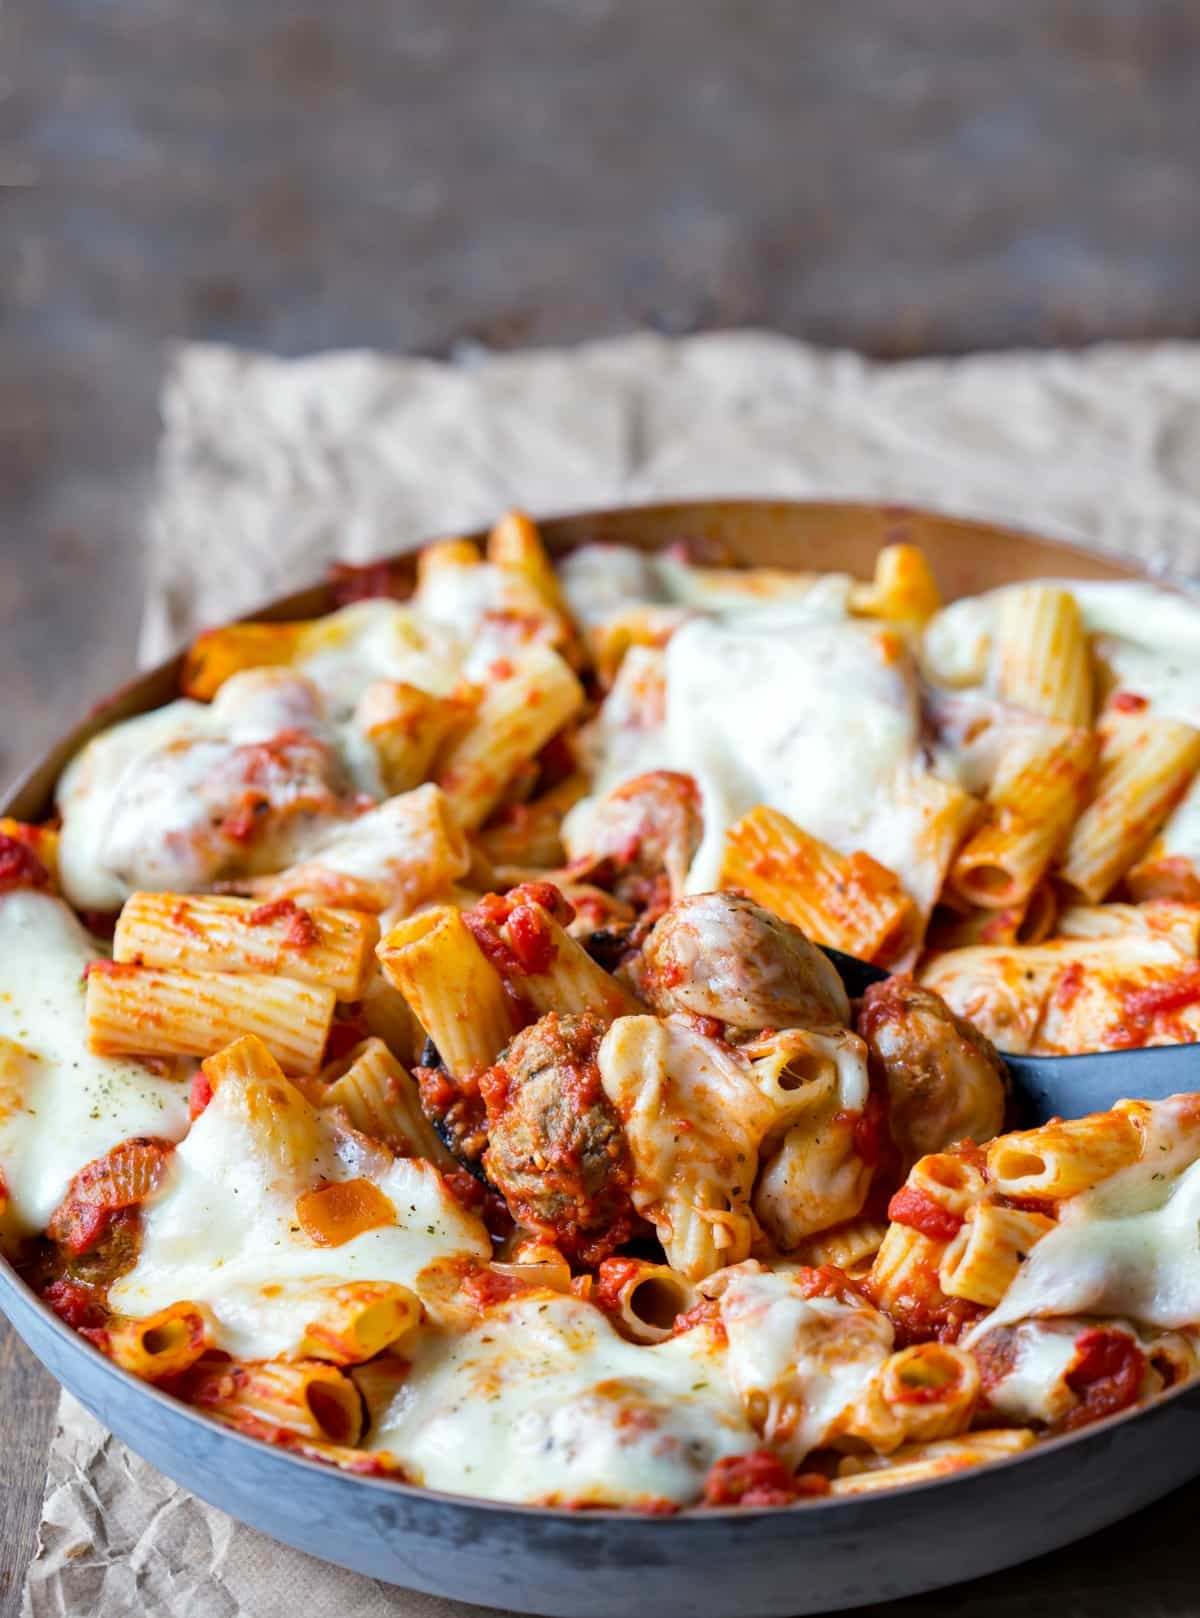 Skillet of meatball pasta on a piece of brown parchment paper